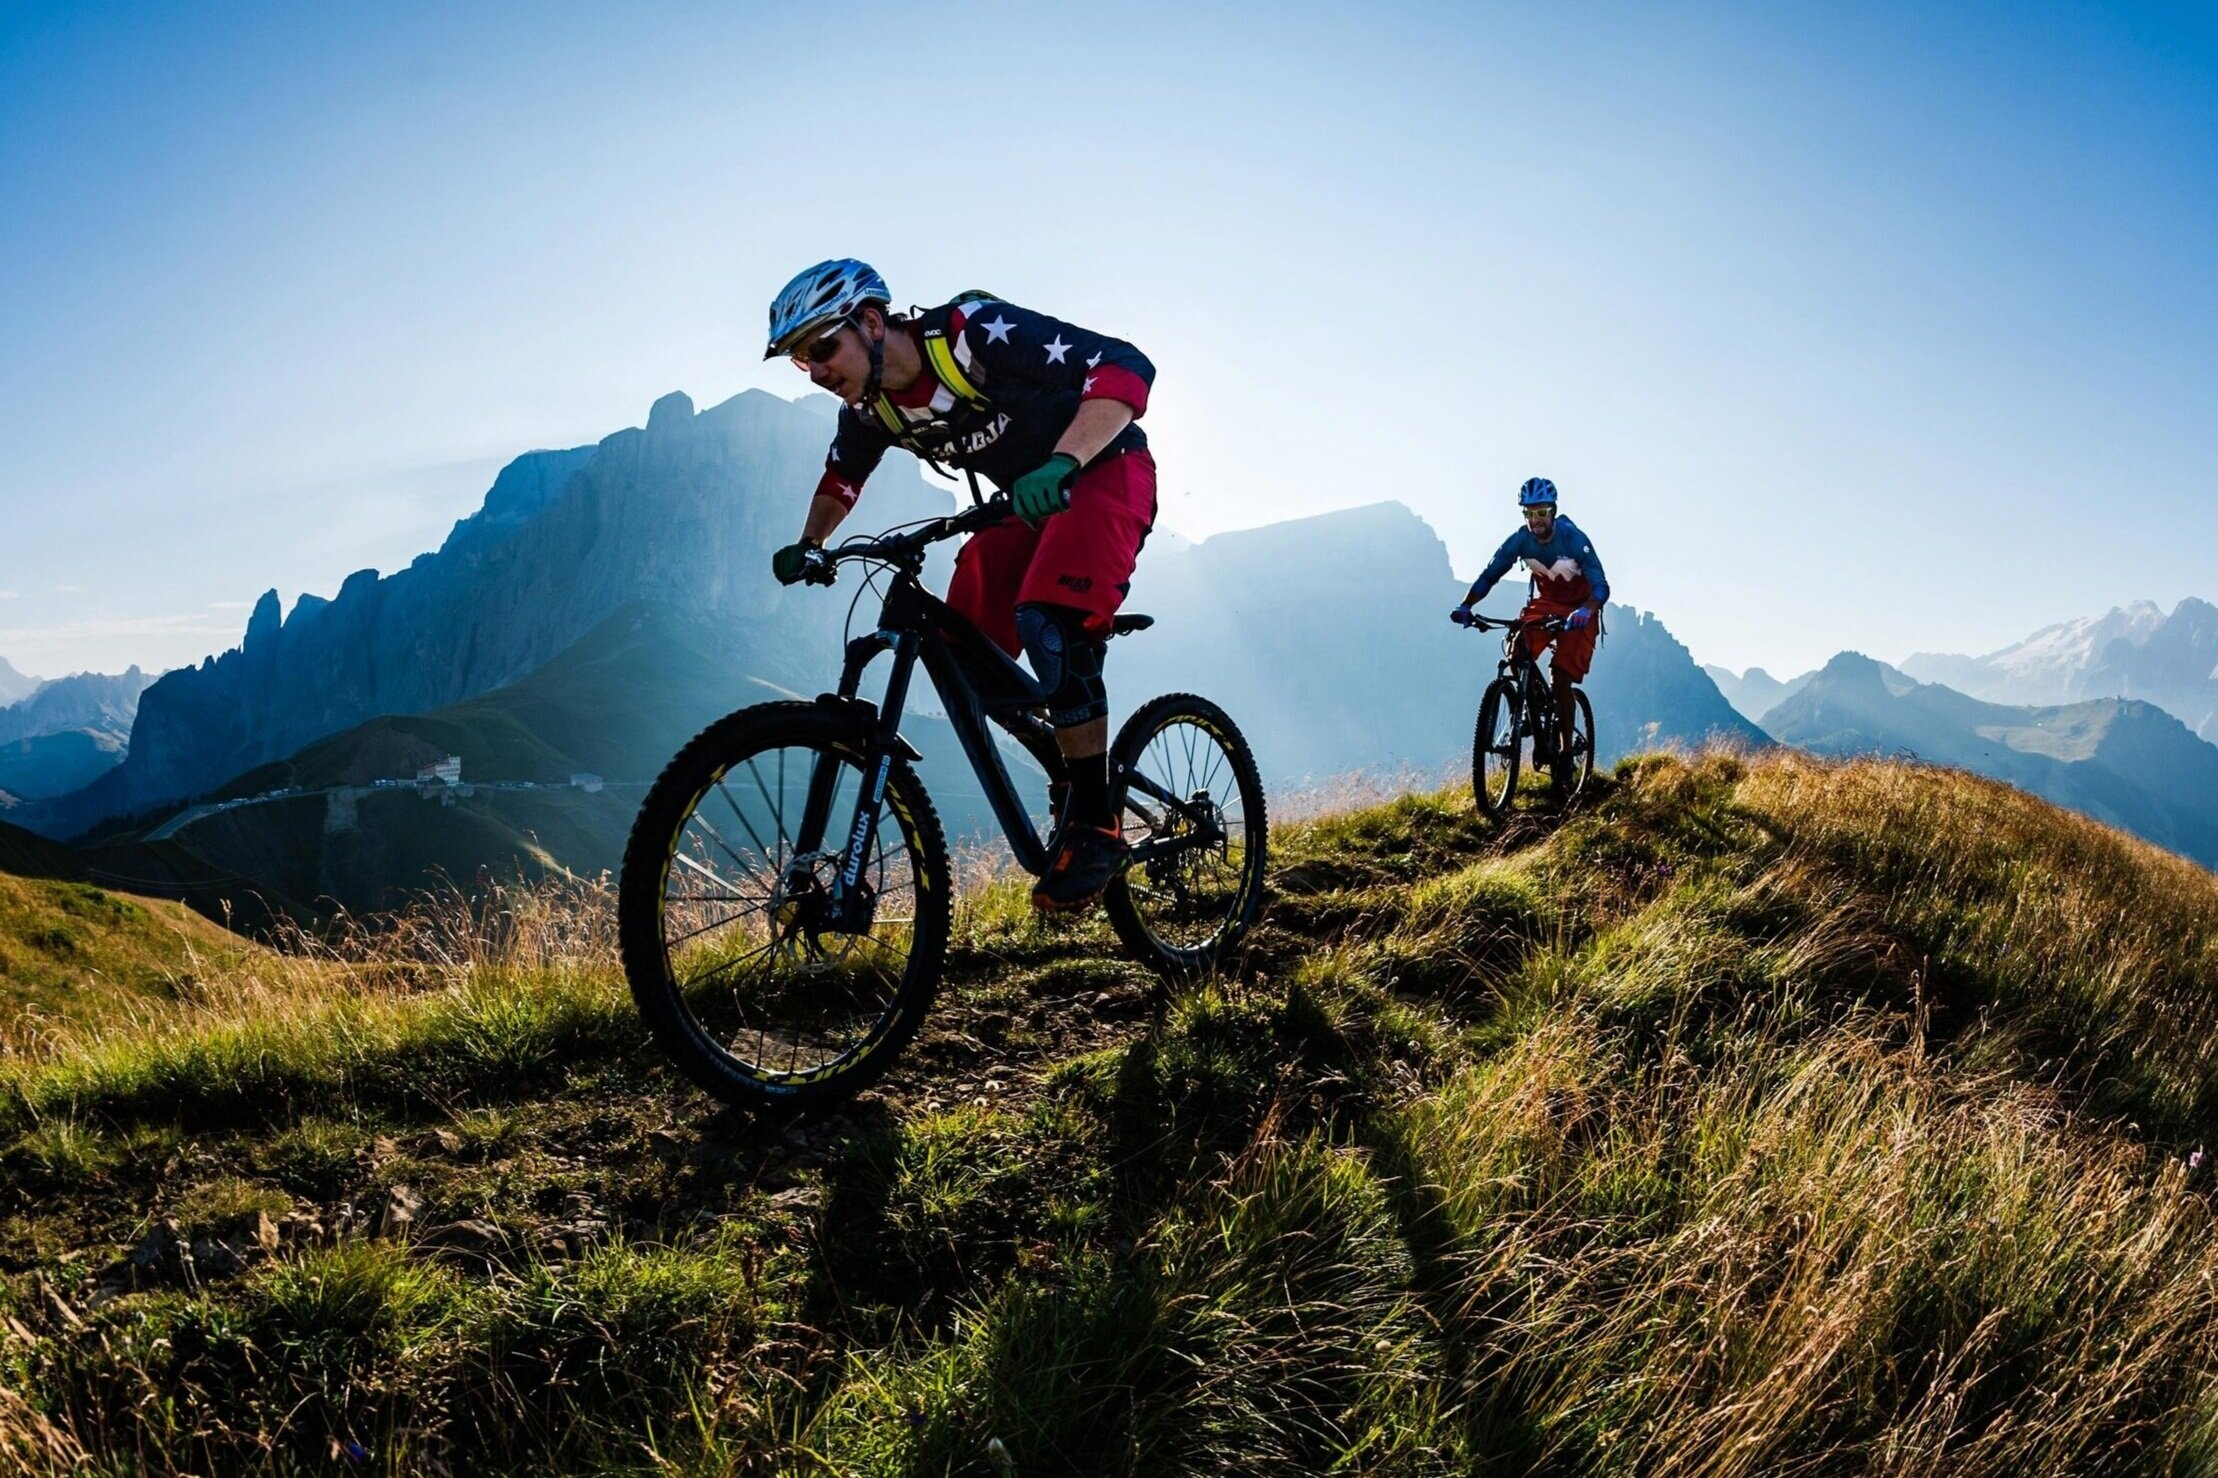 a-pair-of-mountain-bikers-riding-in-the-dolomites-range-in-noertheastern-italy%2B%25281%2529.jpg